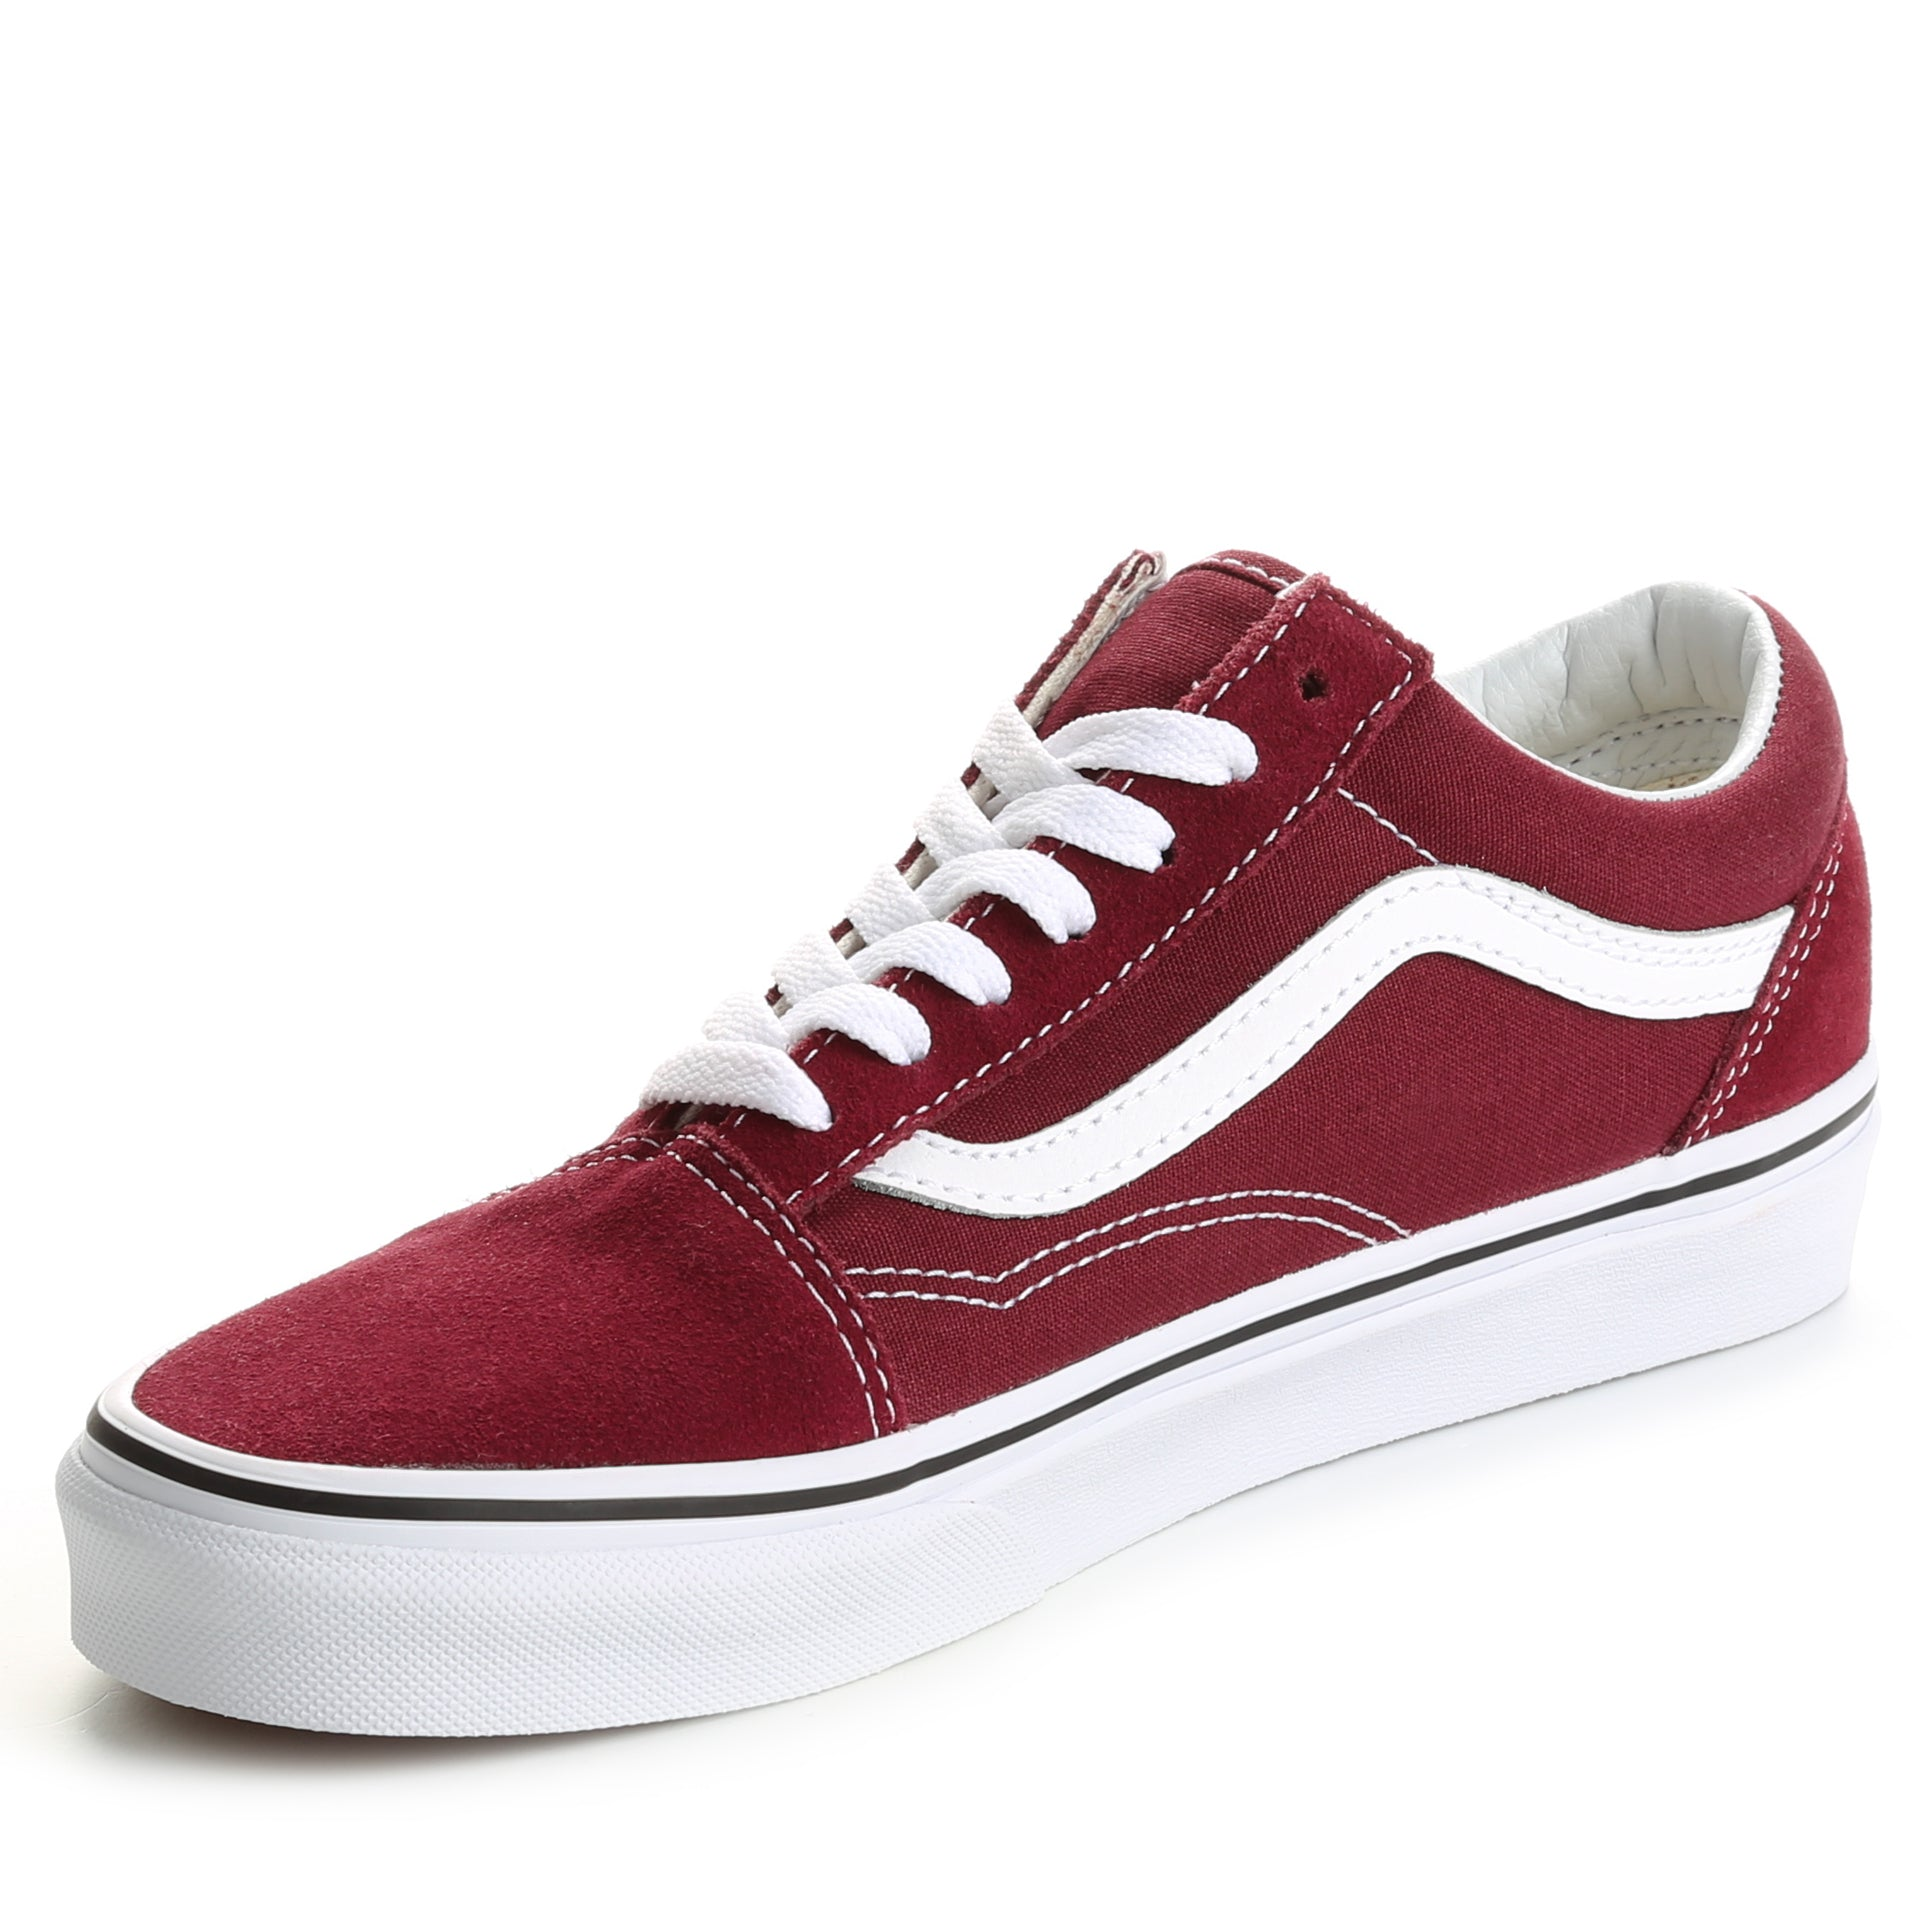 Vans Old Skool - Burgundy True White - New Star 7d341b565